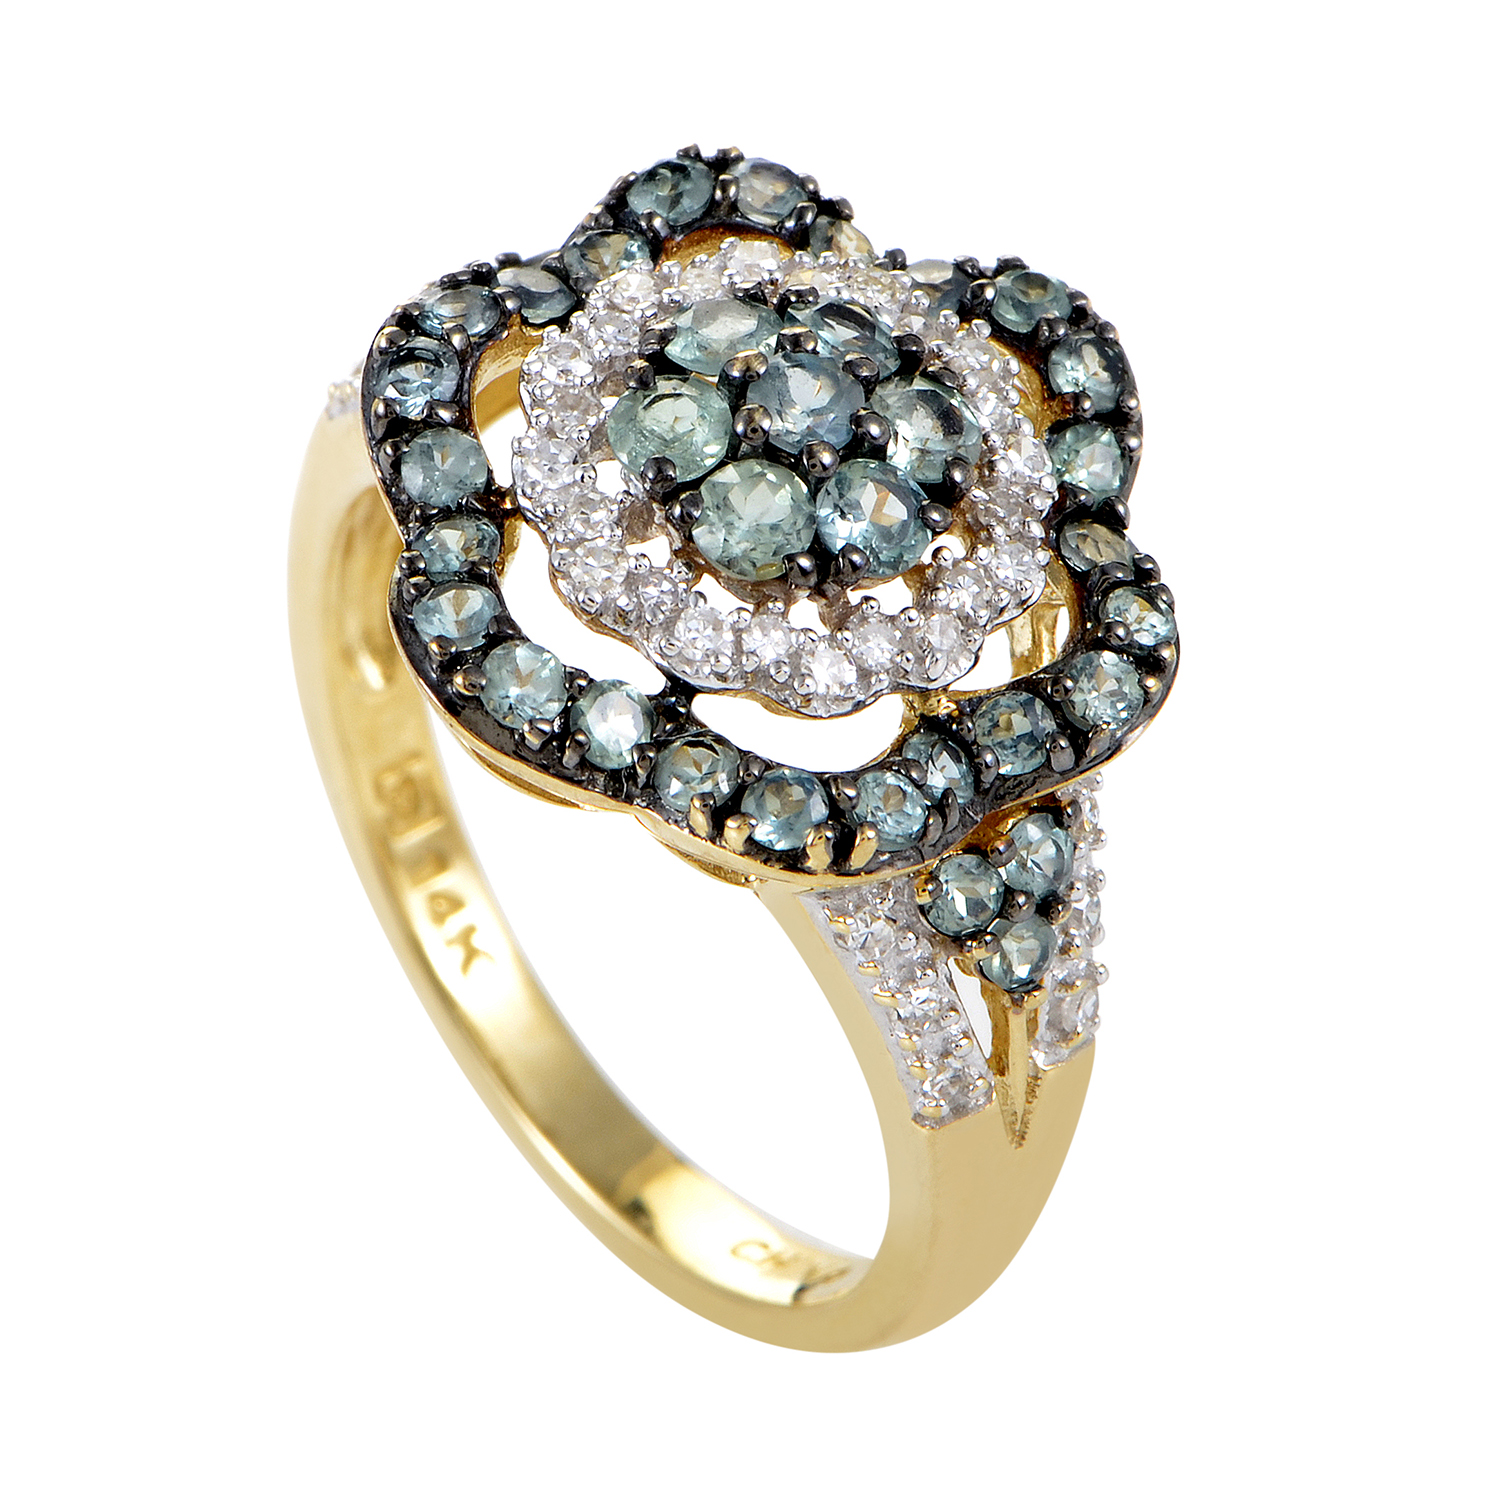 Women's 14K Yellow Gold Diamond & Alexandrite Flower Ring RC4-10525YAL